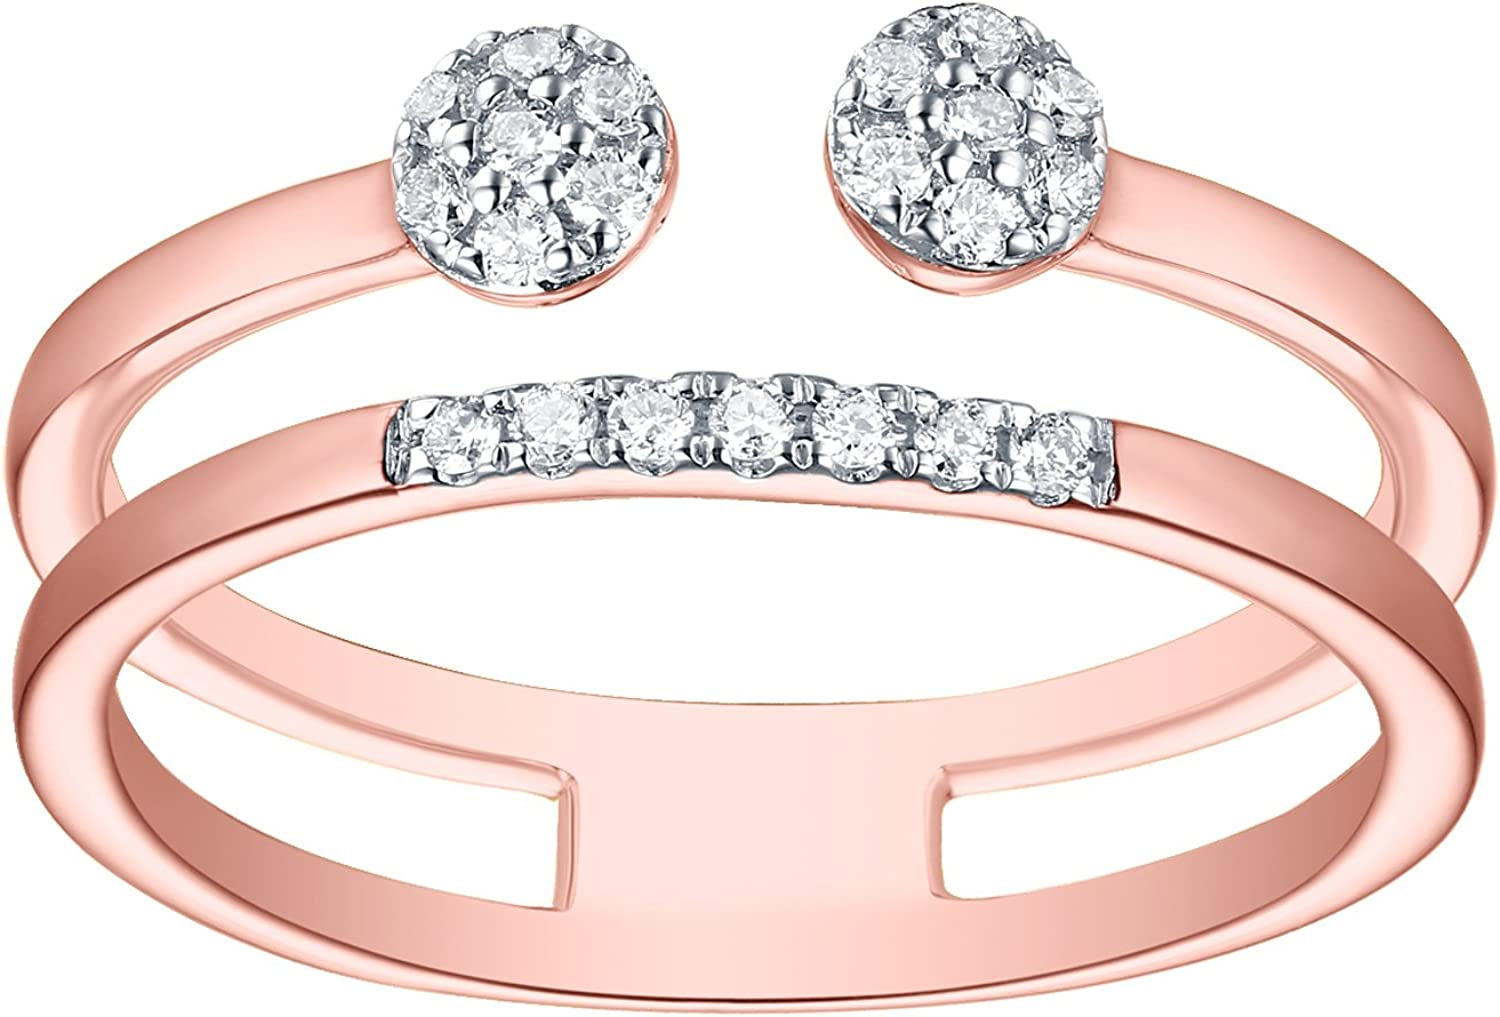 Goldenstar 0.17Ct G-H I2 Natural Diamond Max 77% OFF Ring Fancy Rose G Wrap Max 72% OFF